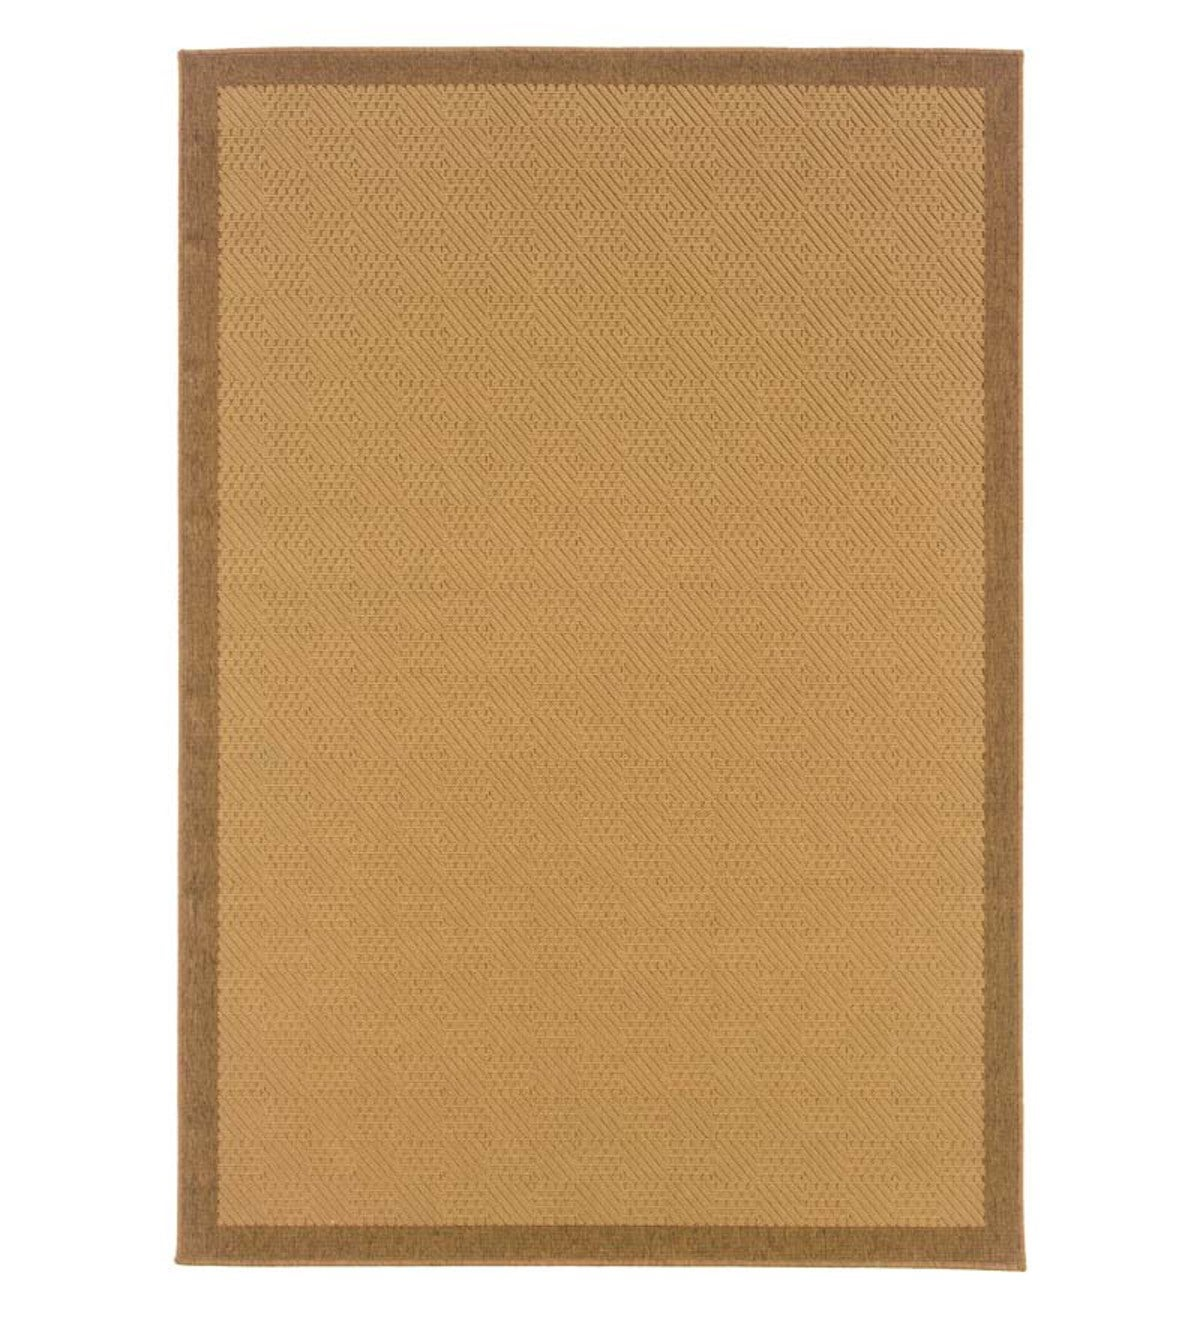 "3'7""W x 5'6""L Indoor/Outdoor Stain-Resistant Textured Lanai Rug with Solid Color Border - Brown"